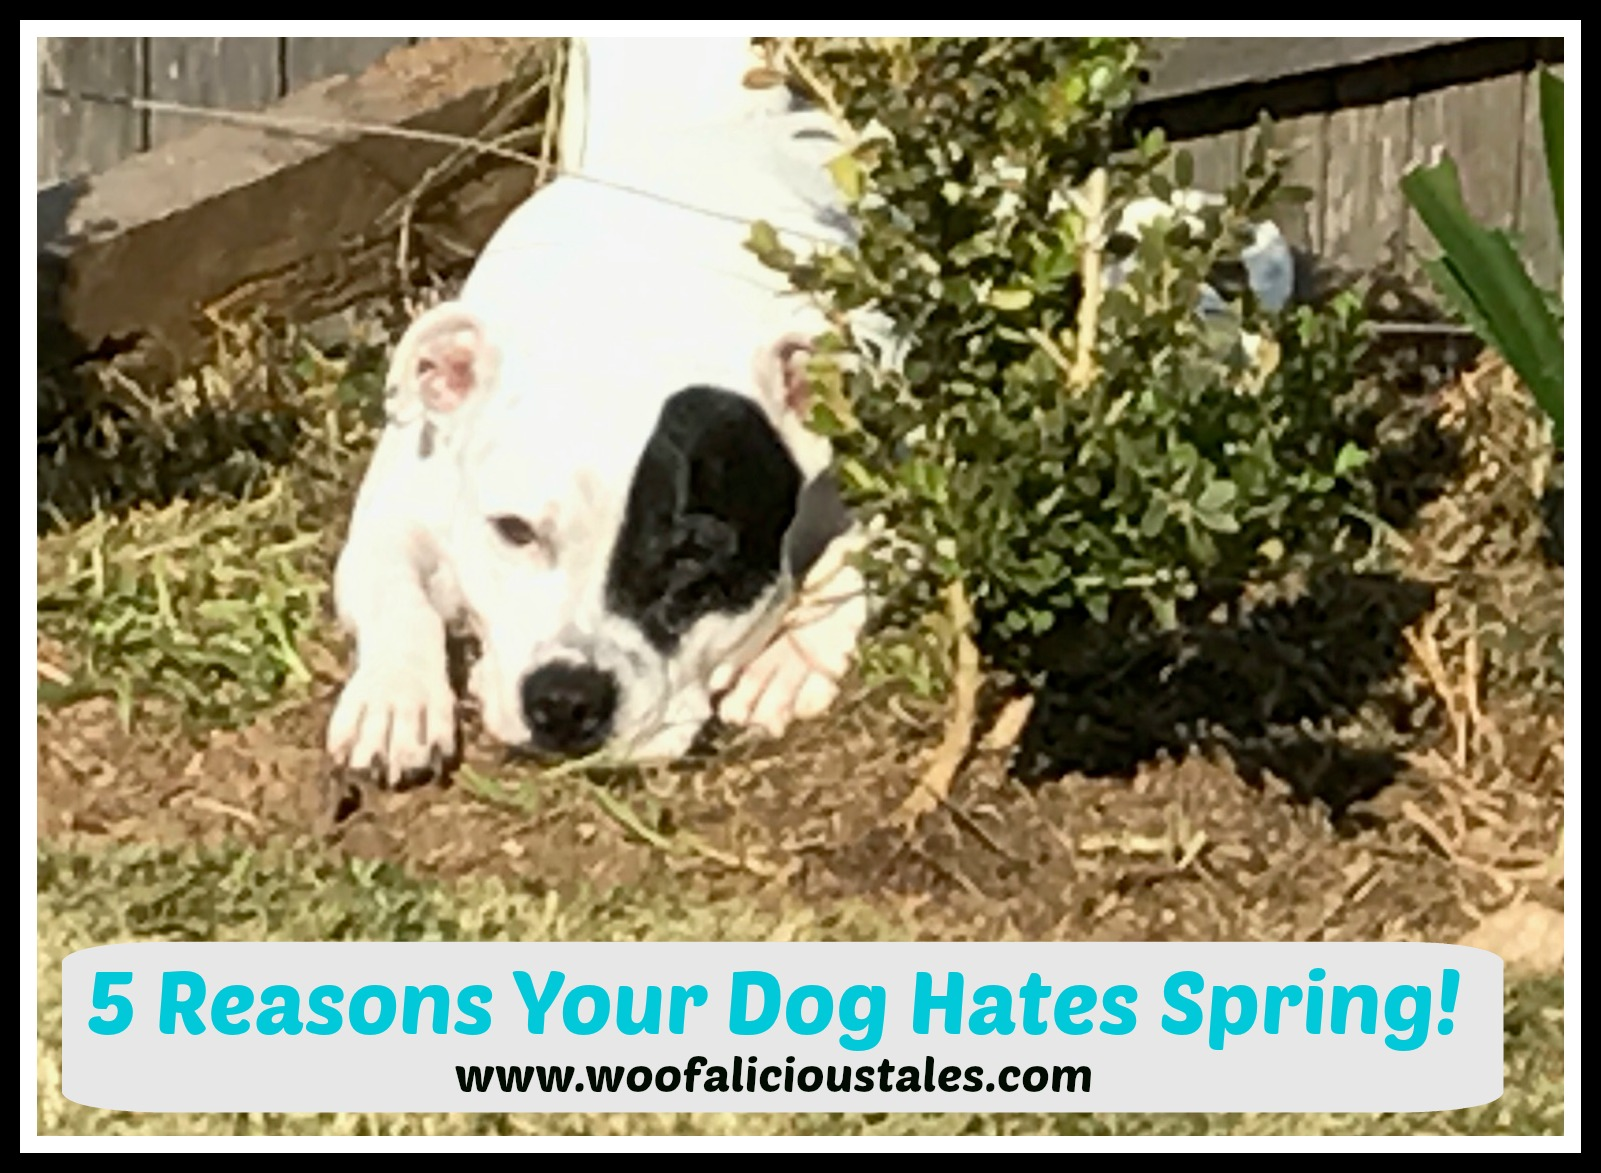 white Staffordshire bull terrier with black patch on eye in garden